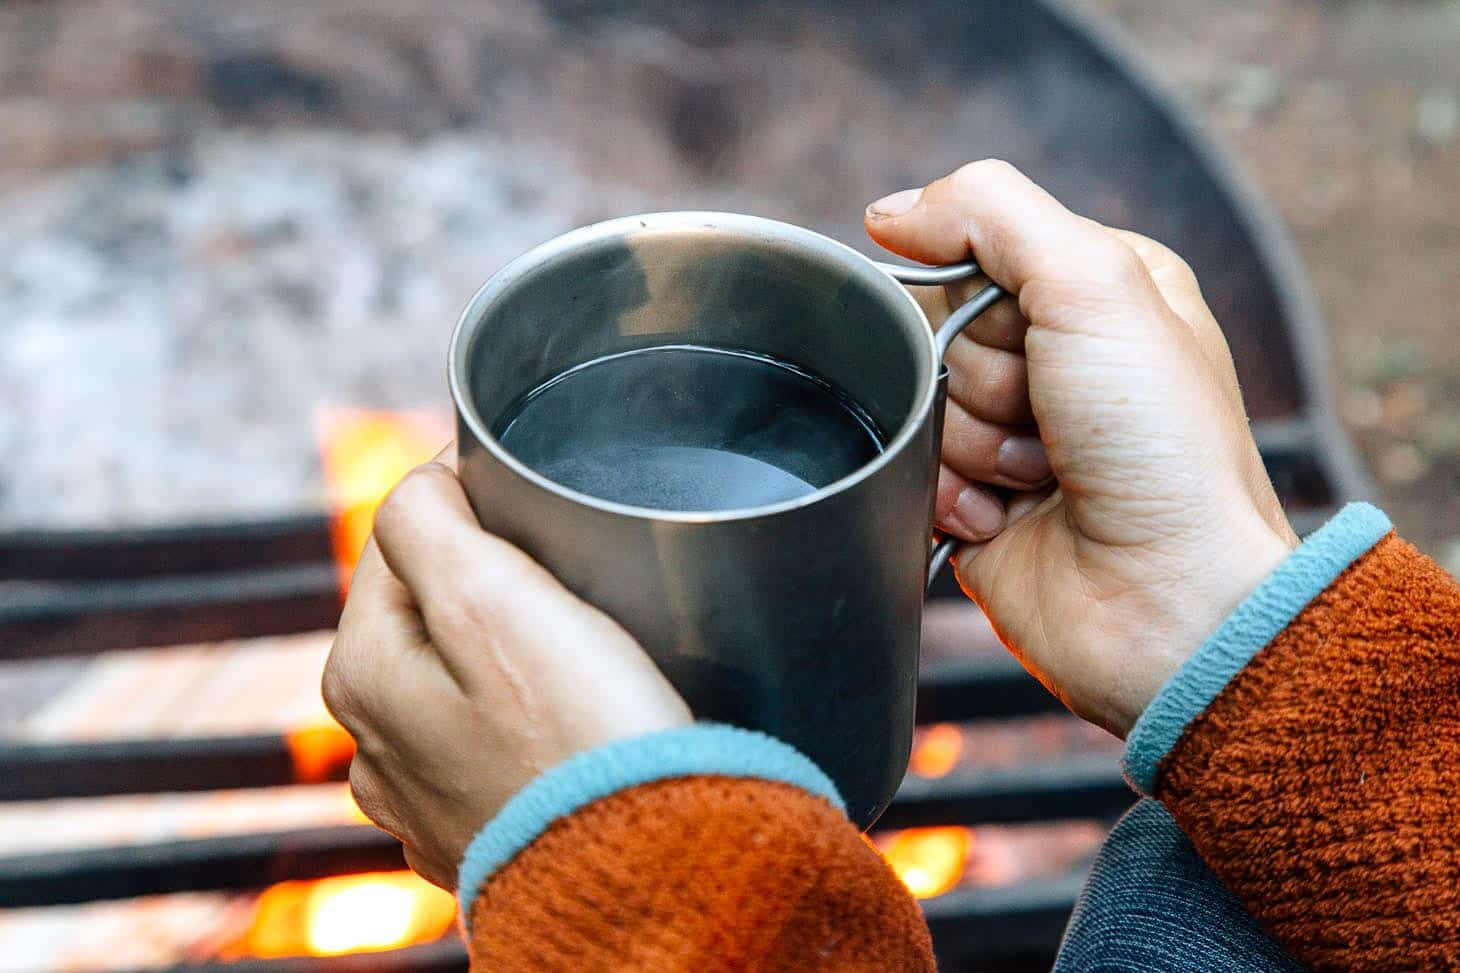 The Ultimate Guide to Making Coffee While Camping